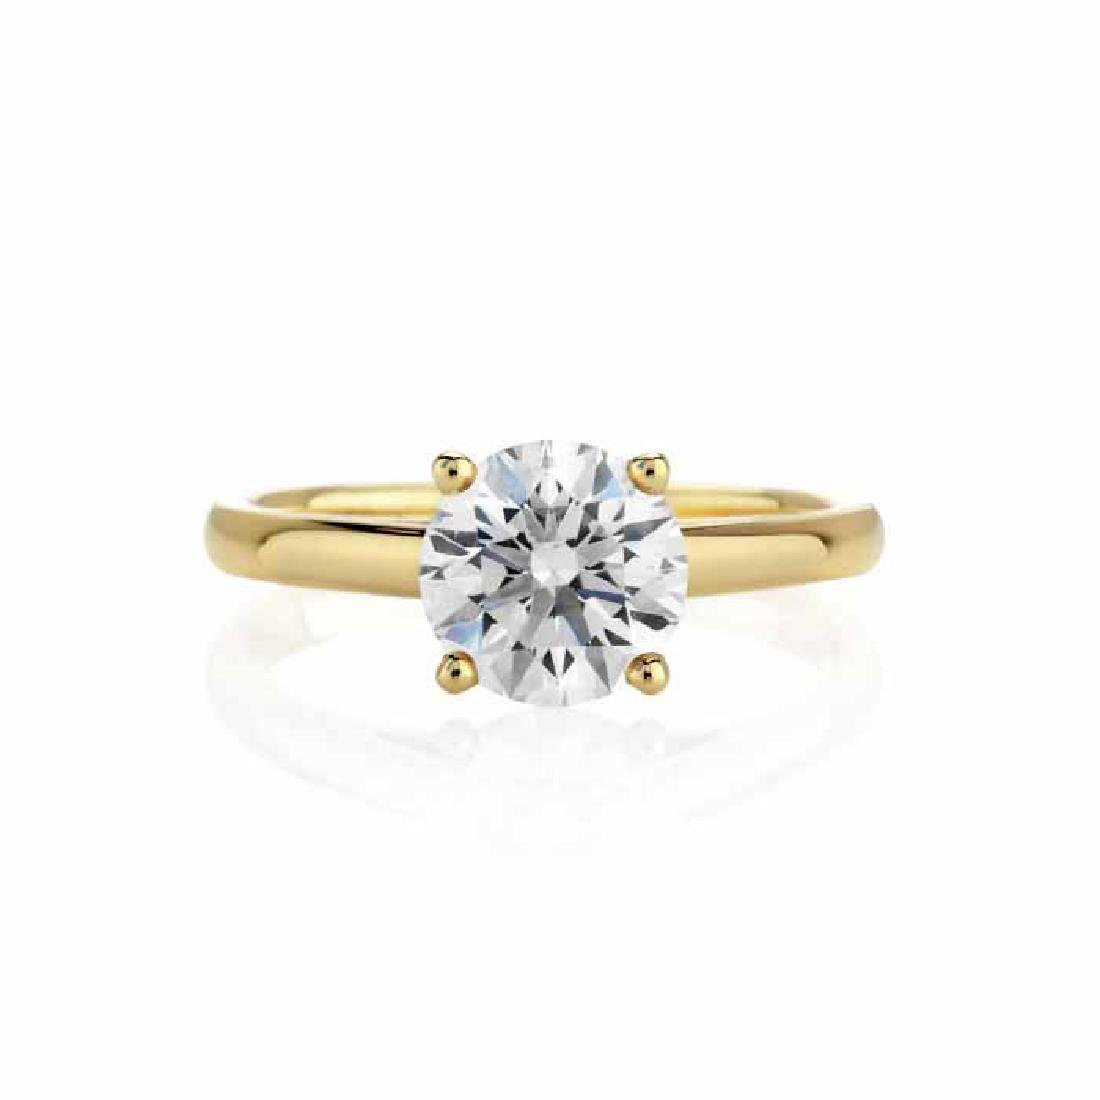 CERTIFIED 1 CTW D/SI2 ROUND DIAMOND SOLITAIRE RING IN 1